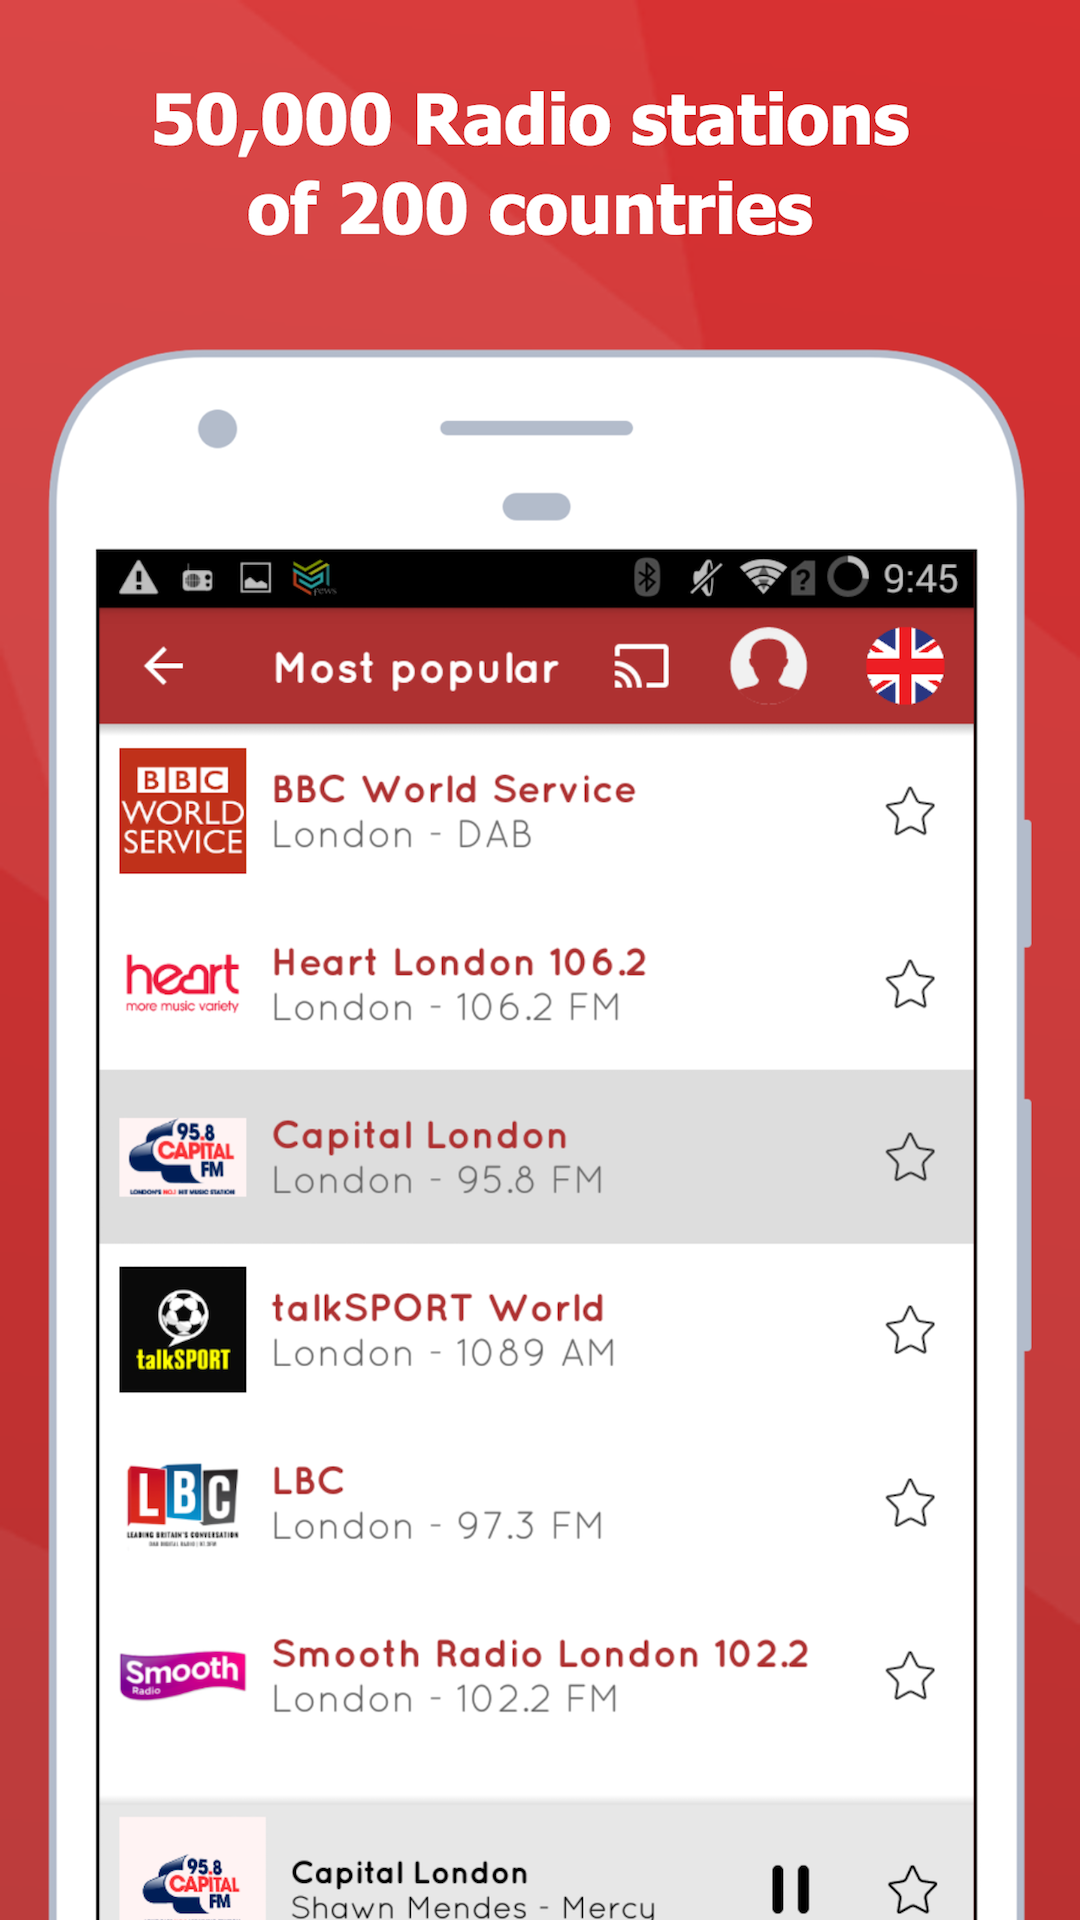 myTuner UK Radio Player App - FM Radio Stations to Listen to for Free on  Amazon and Android (Free Radio App)